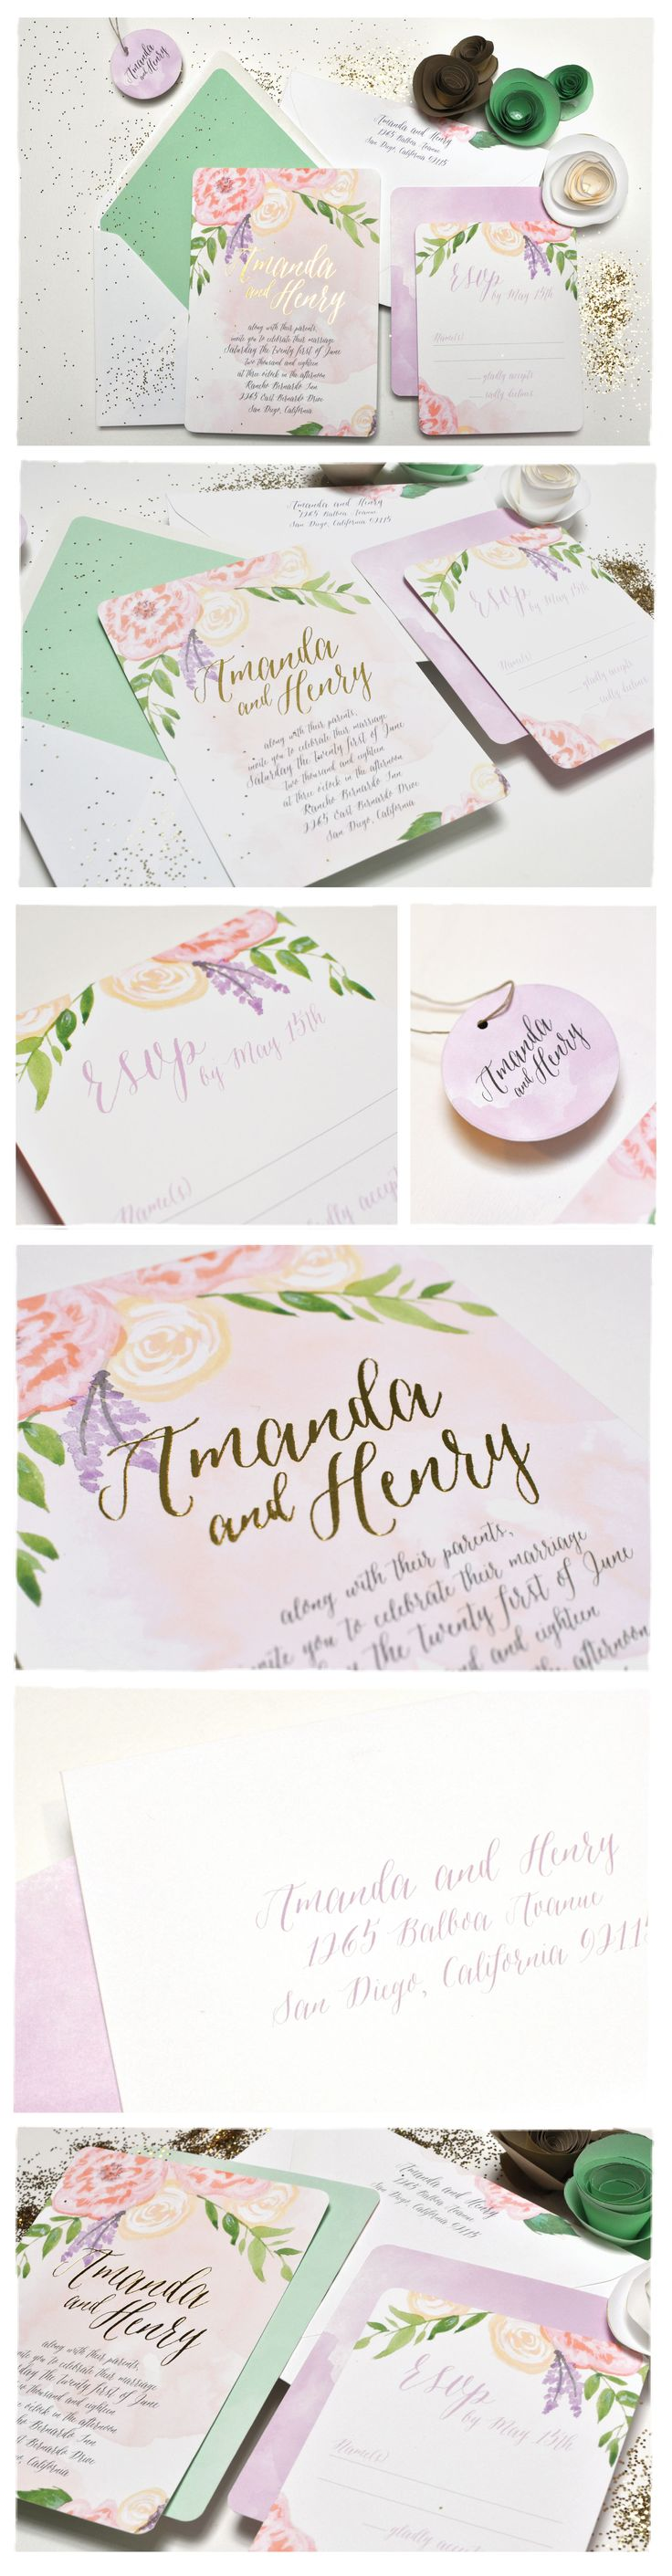 Ideas about map wedding invitation on pinterest - Peony With Foil Wedding Invitation Suite Smitten On Paper Hand Illustrated Flowers With Watercolor